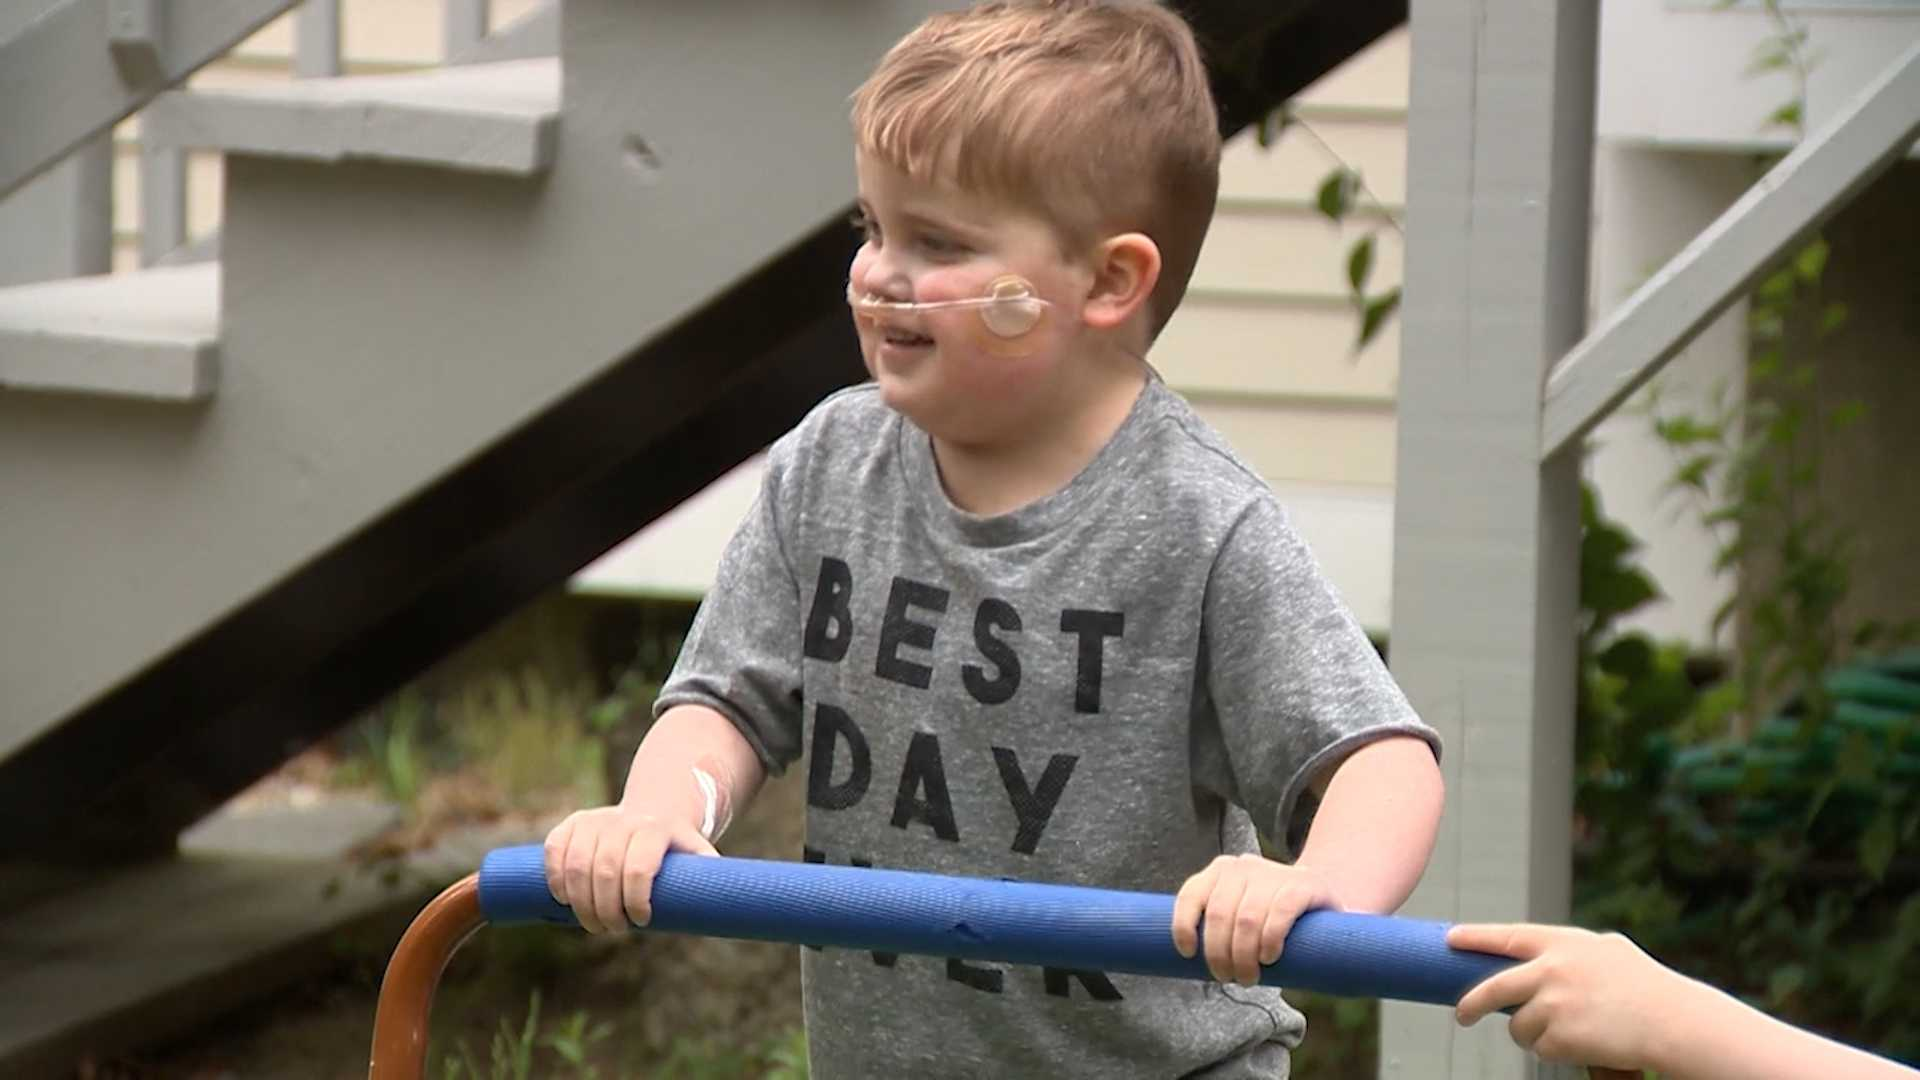 Ari Schultz, 5-year-old heart transplant recipient who went viral, dies